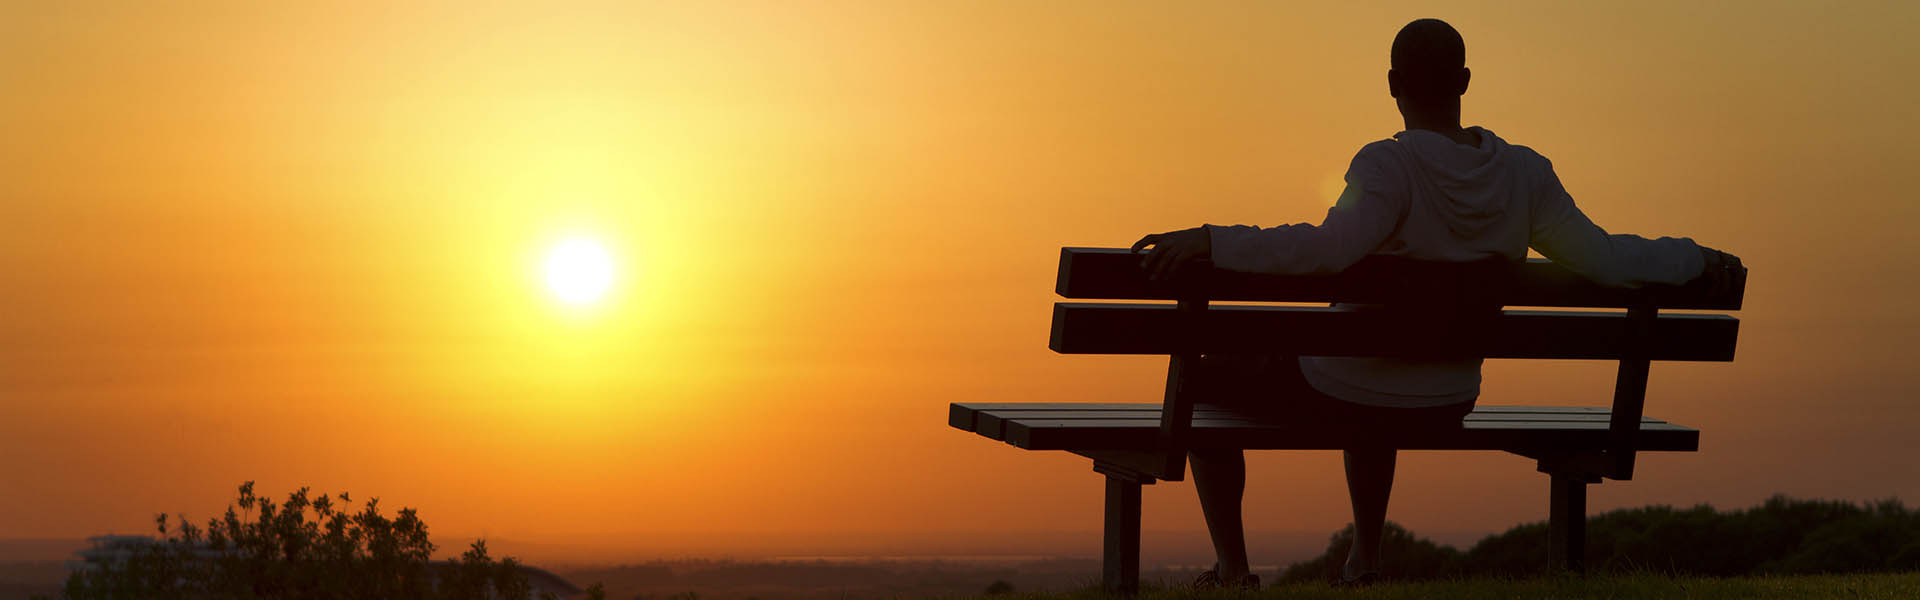 man on bench watching a sunset enjoying life